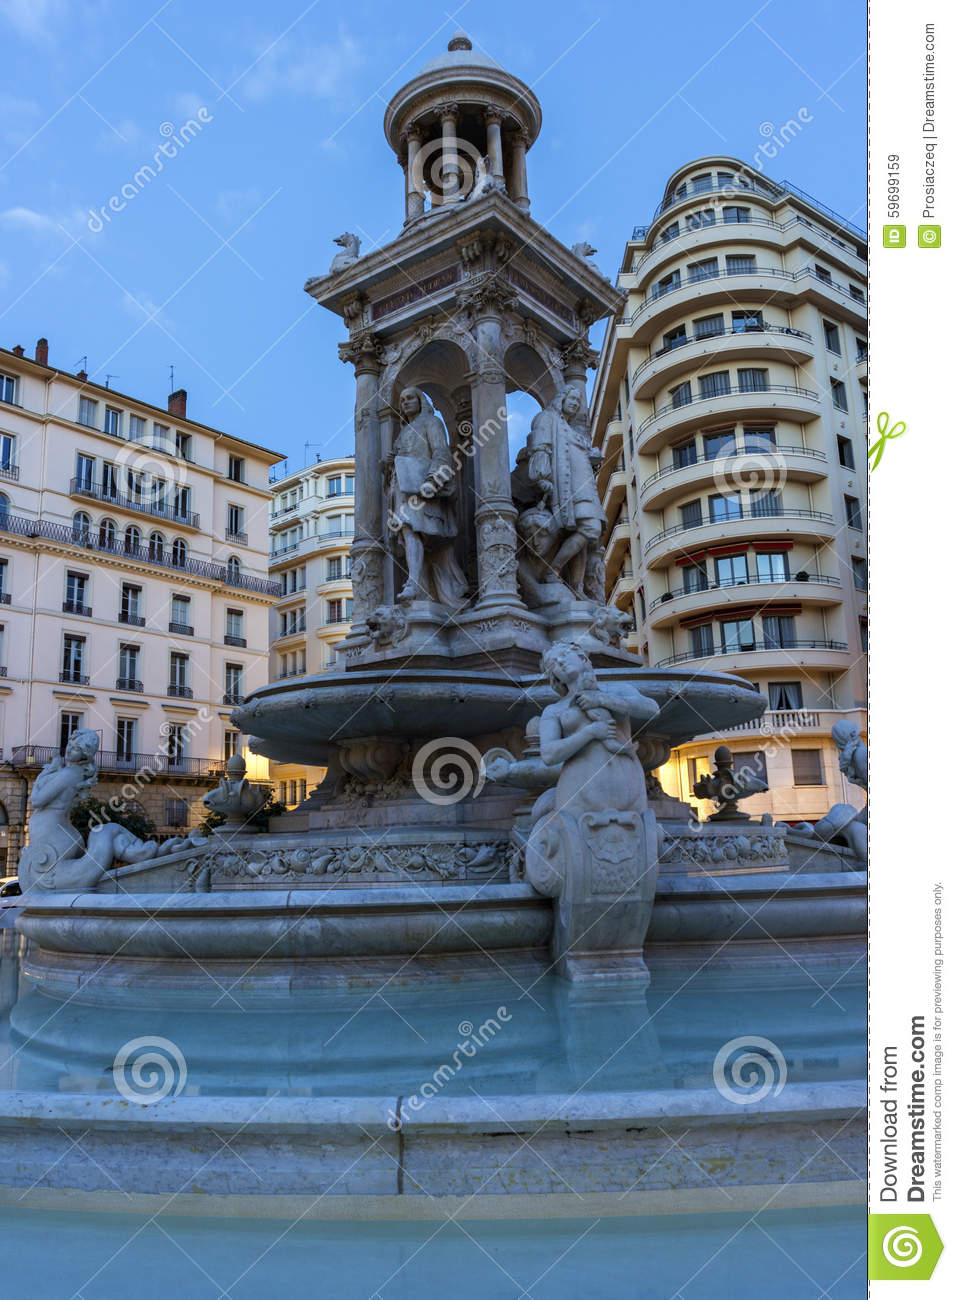 Place des jacobins in lyon in france stock photo image - Place des jacobins lyon ...